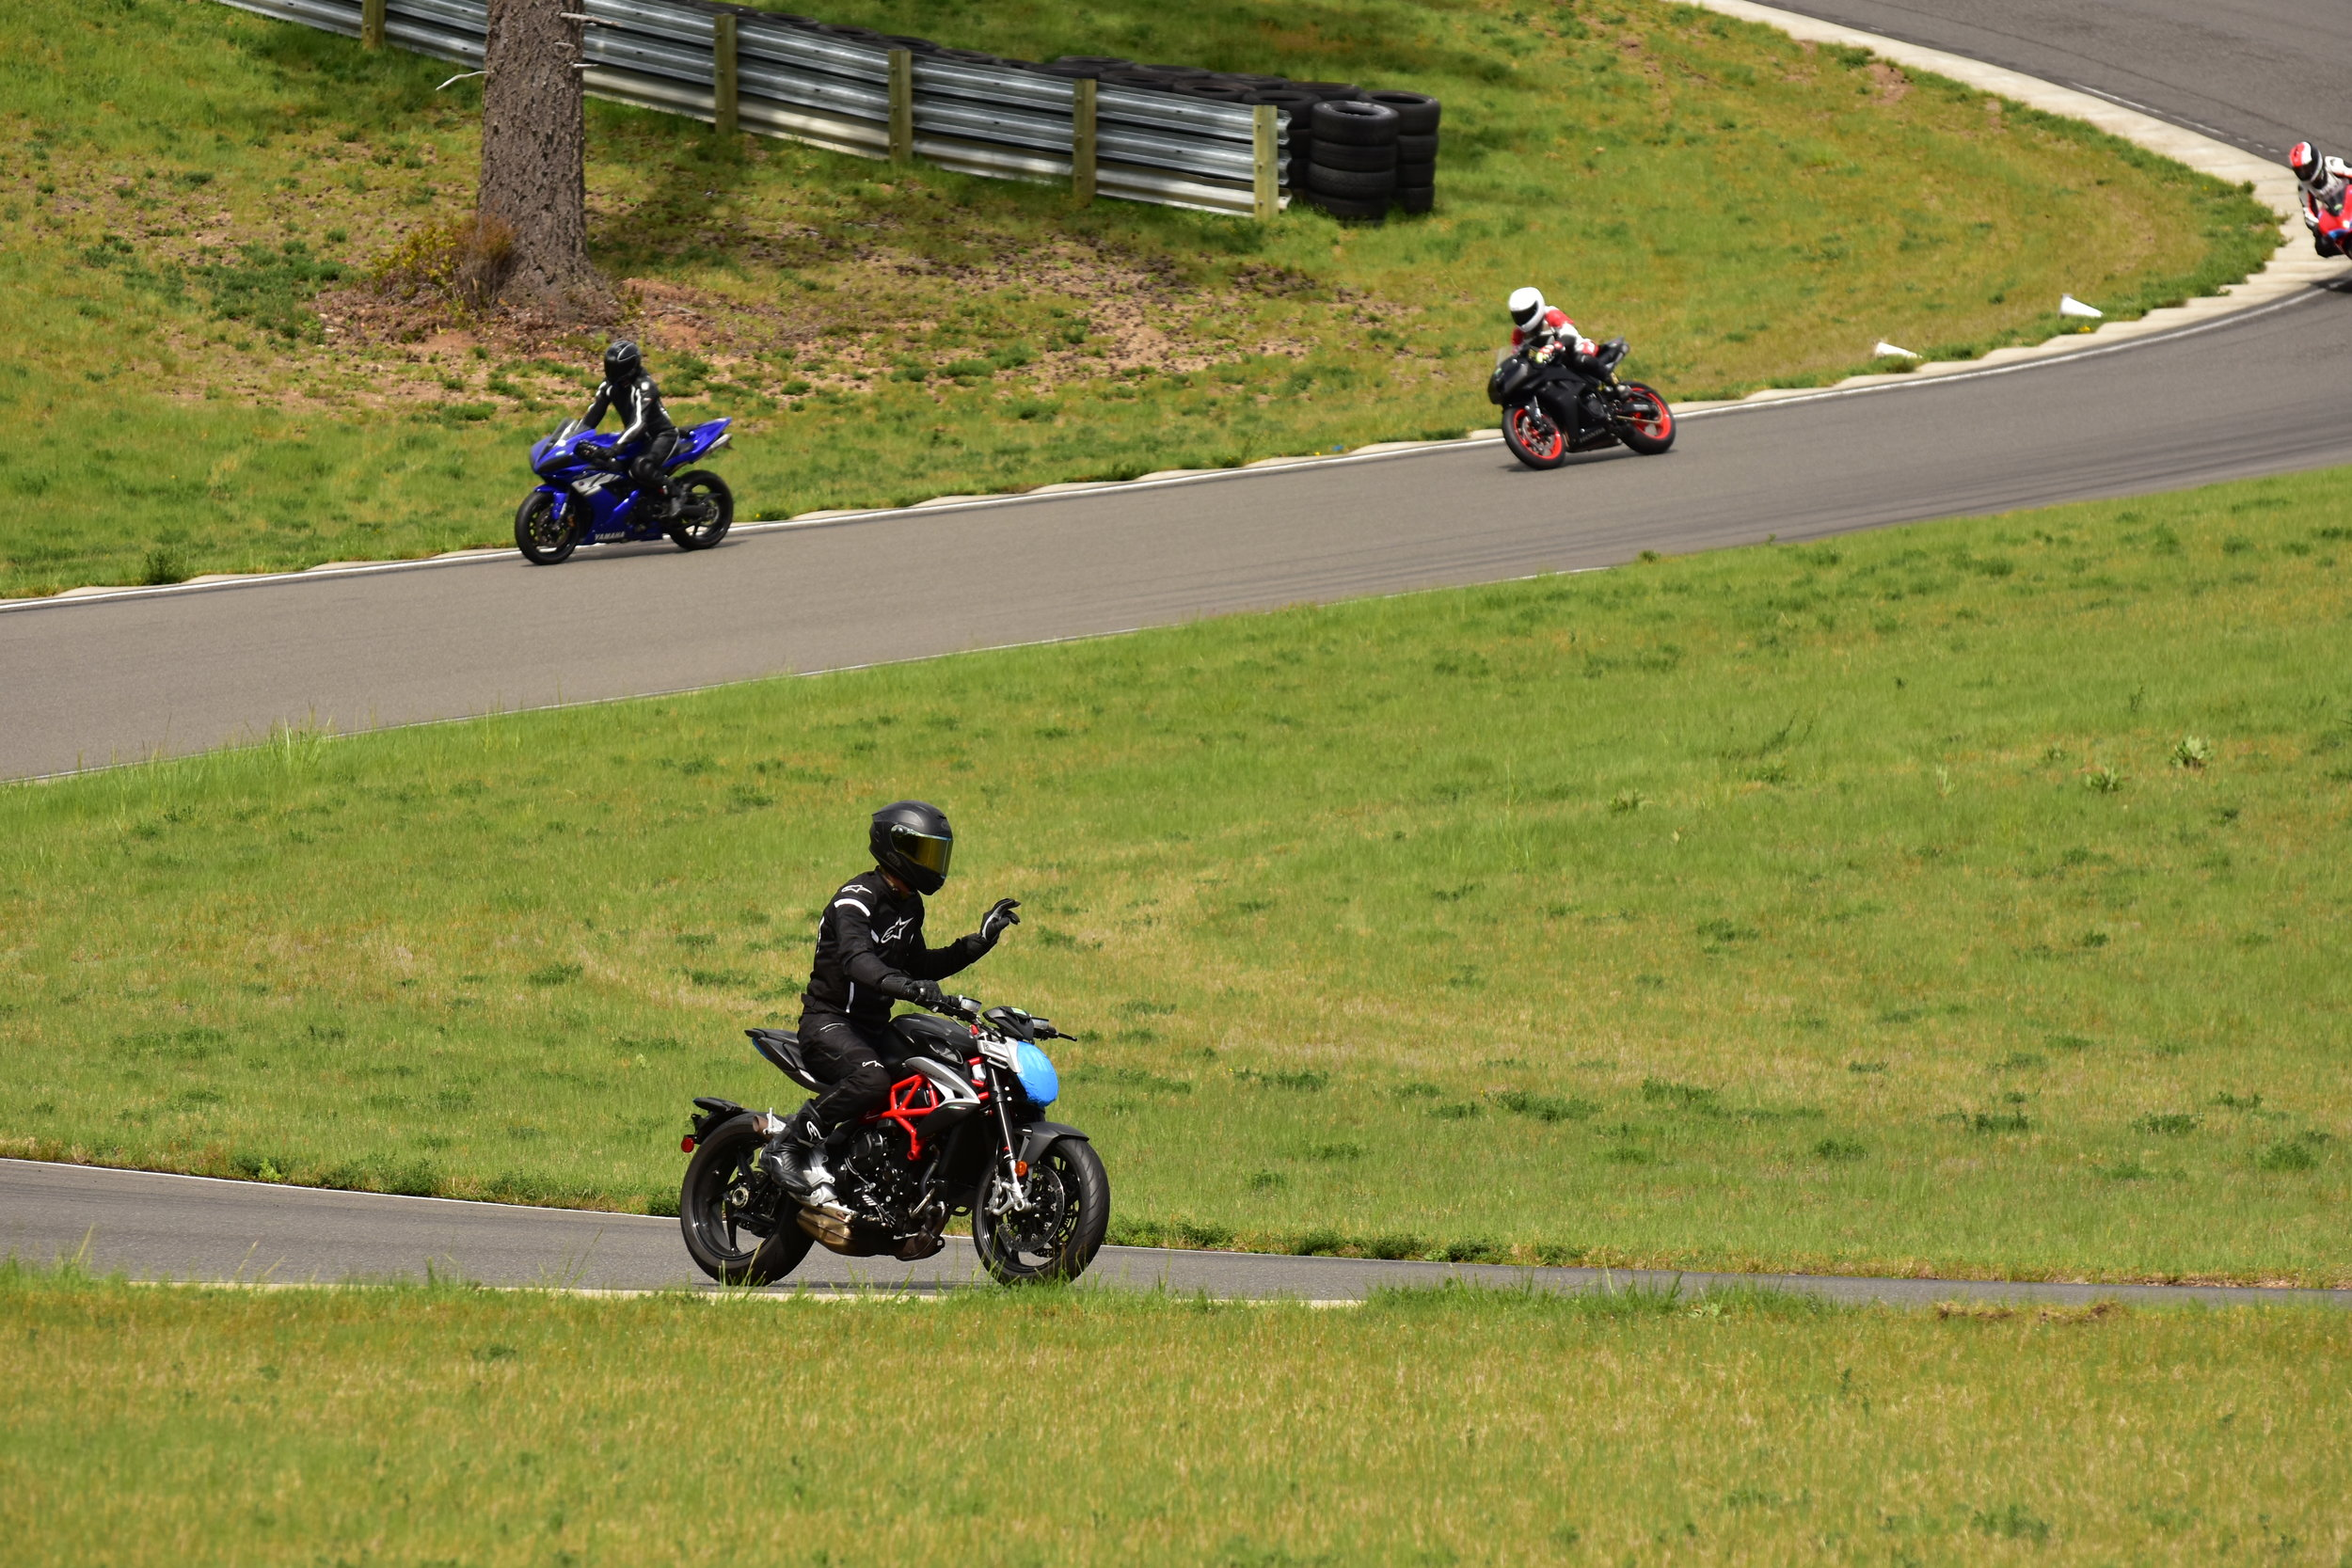 Calling it quits after standing up the bike to avoid hitting the downed Suzuki rider